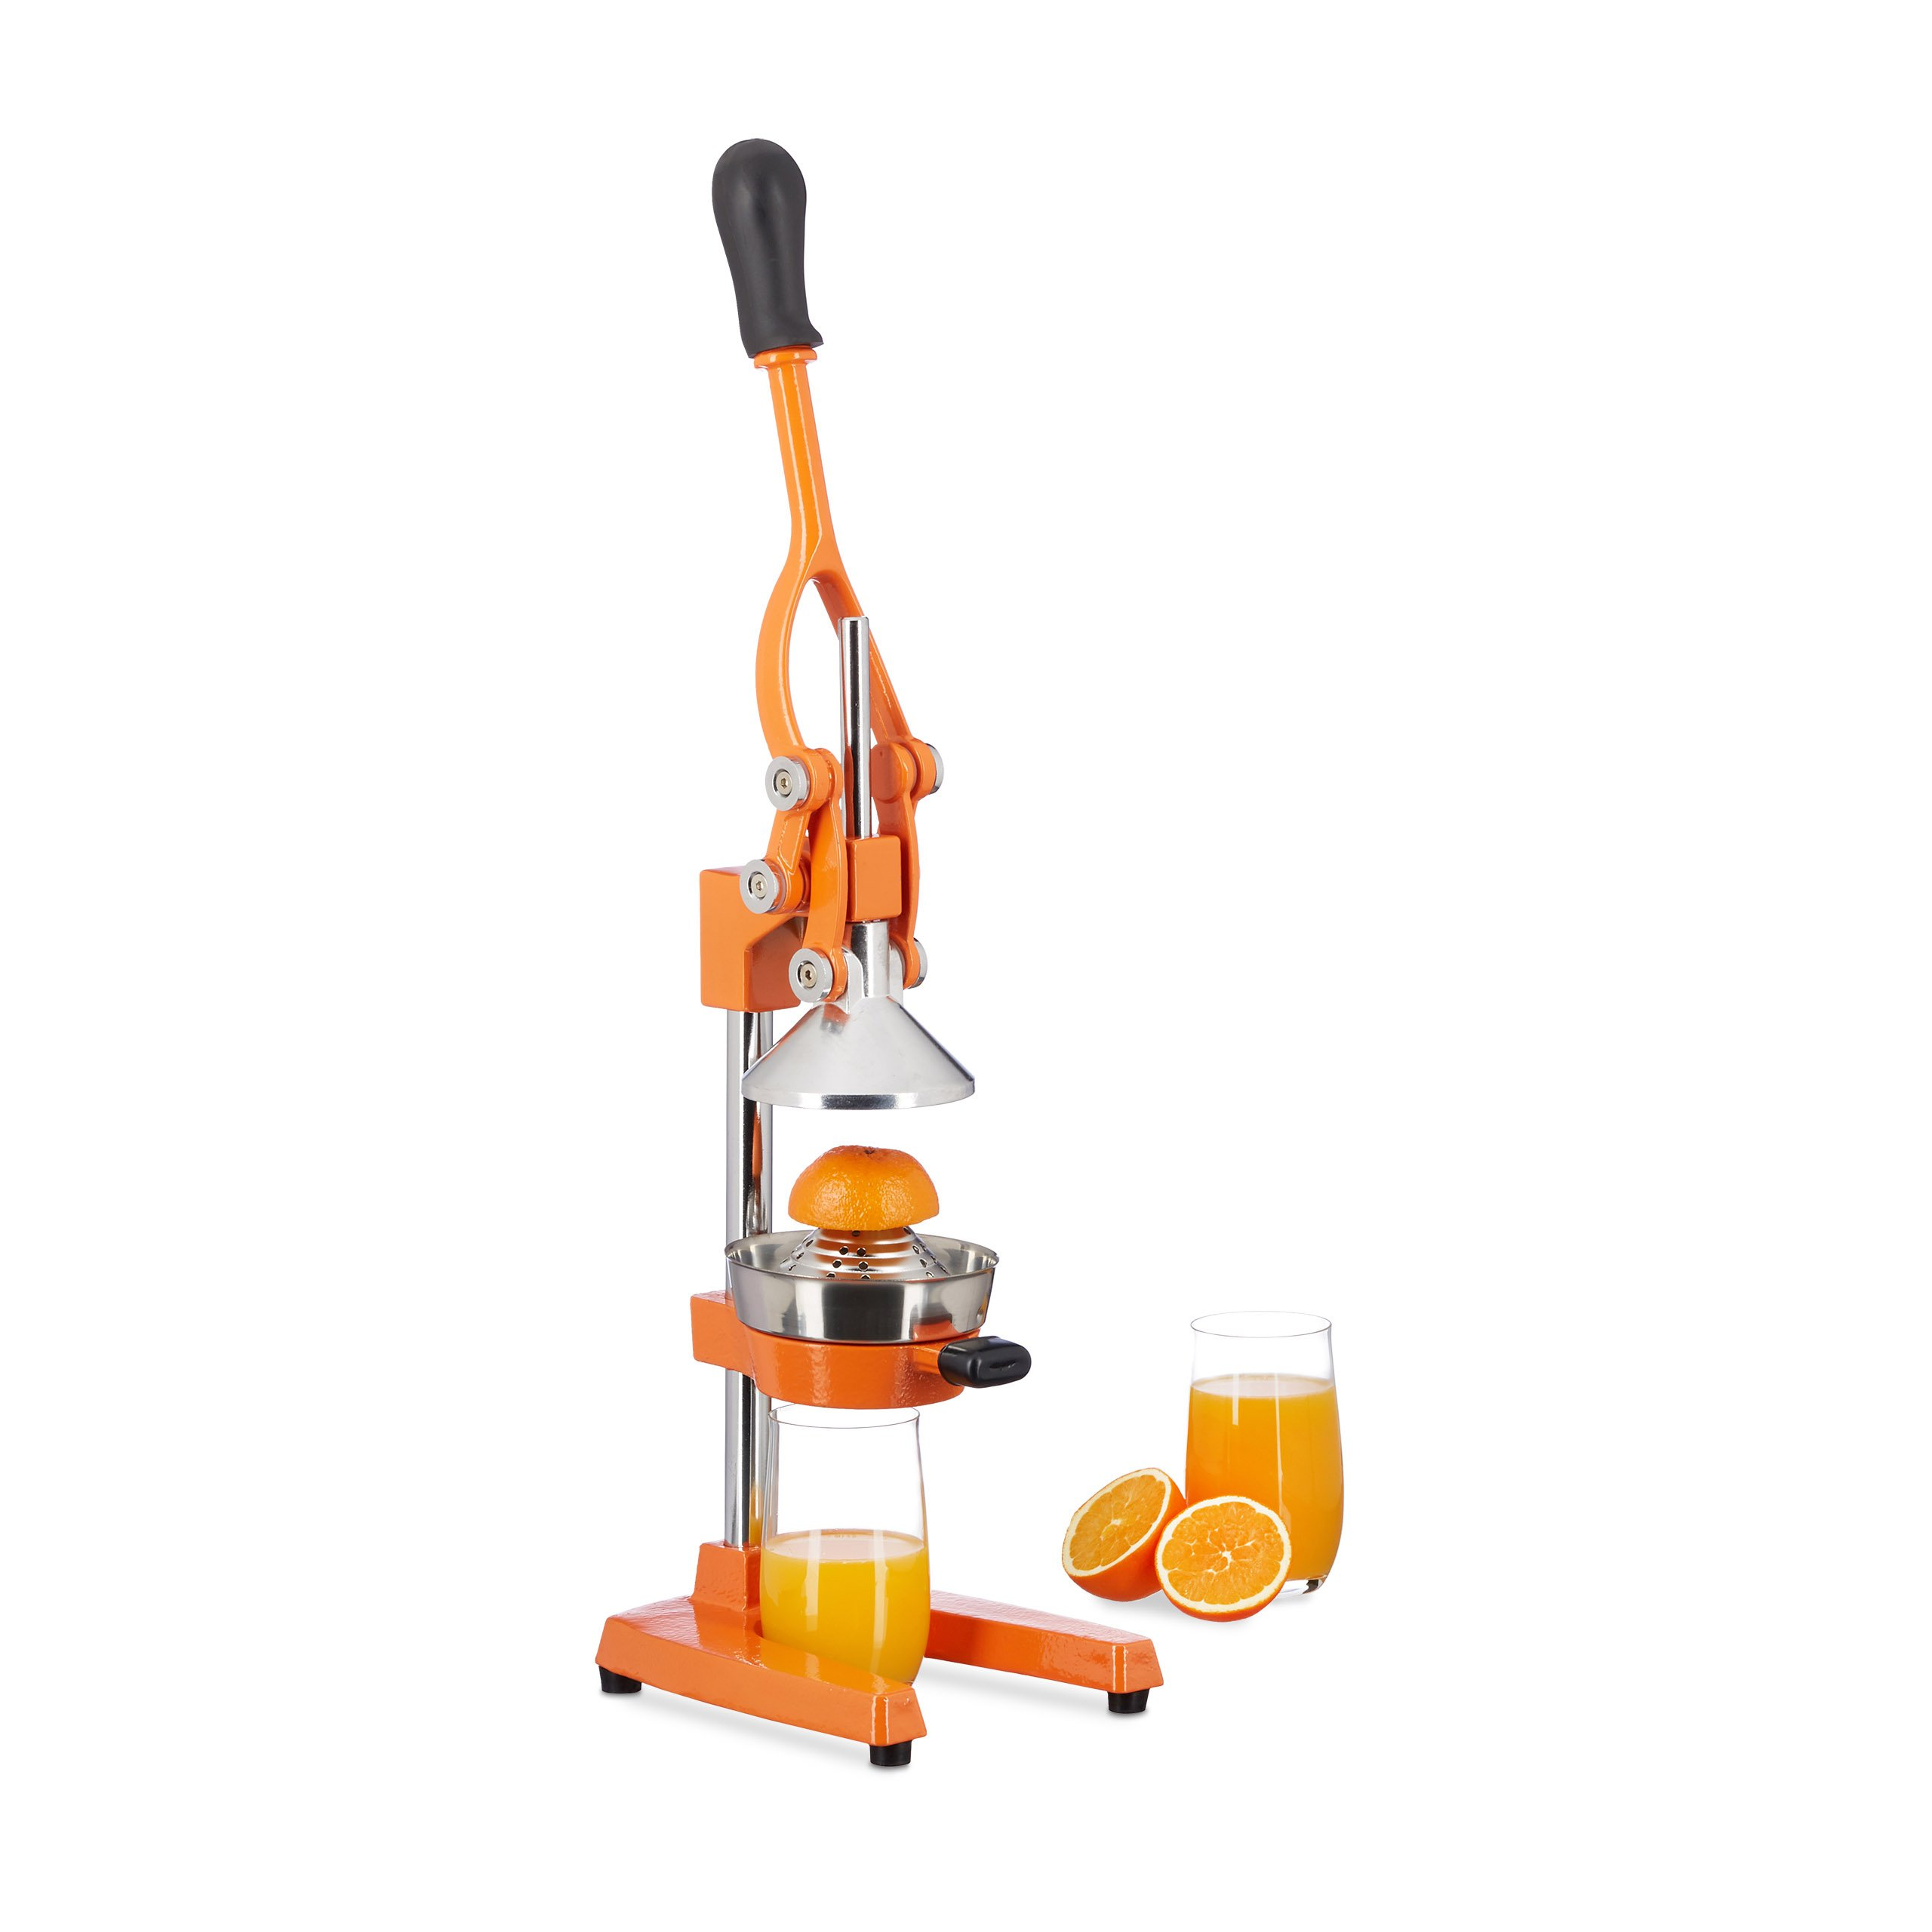 Relaxdays Manual Iron and Stainless Steel Juicer, Citrus Press for Oranges, Professional Lever Zester, Orange